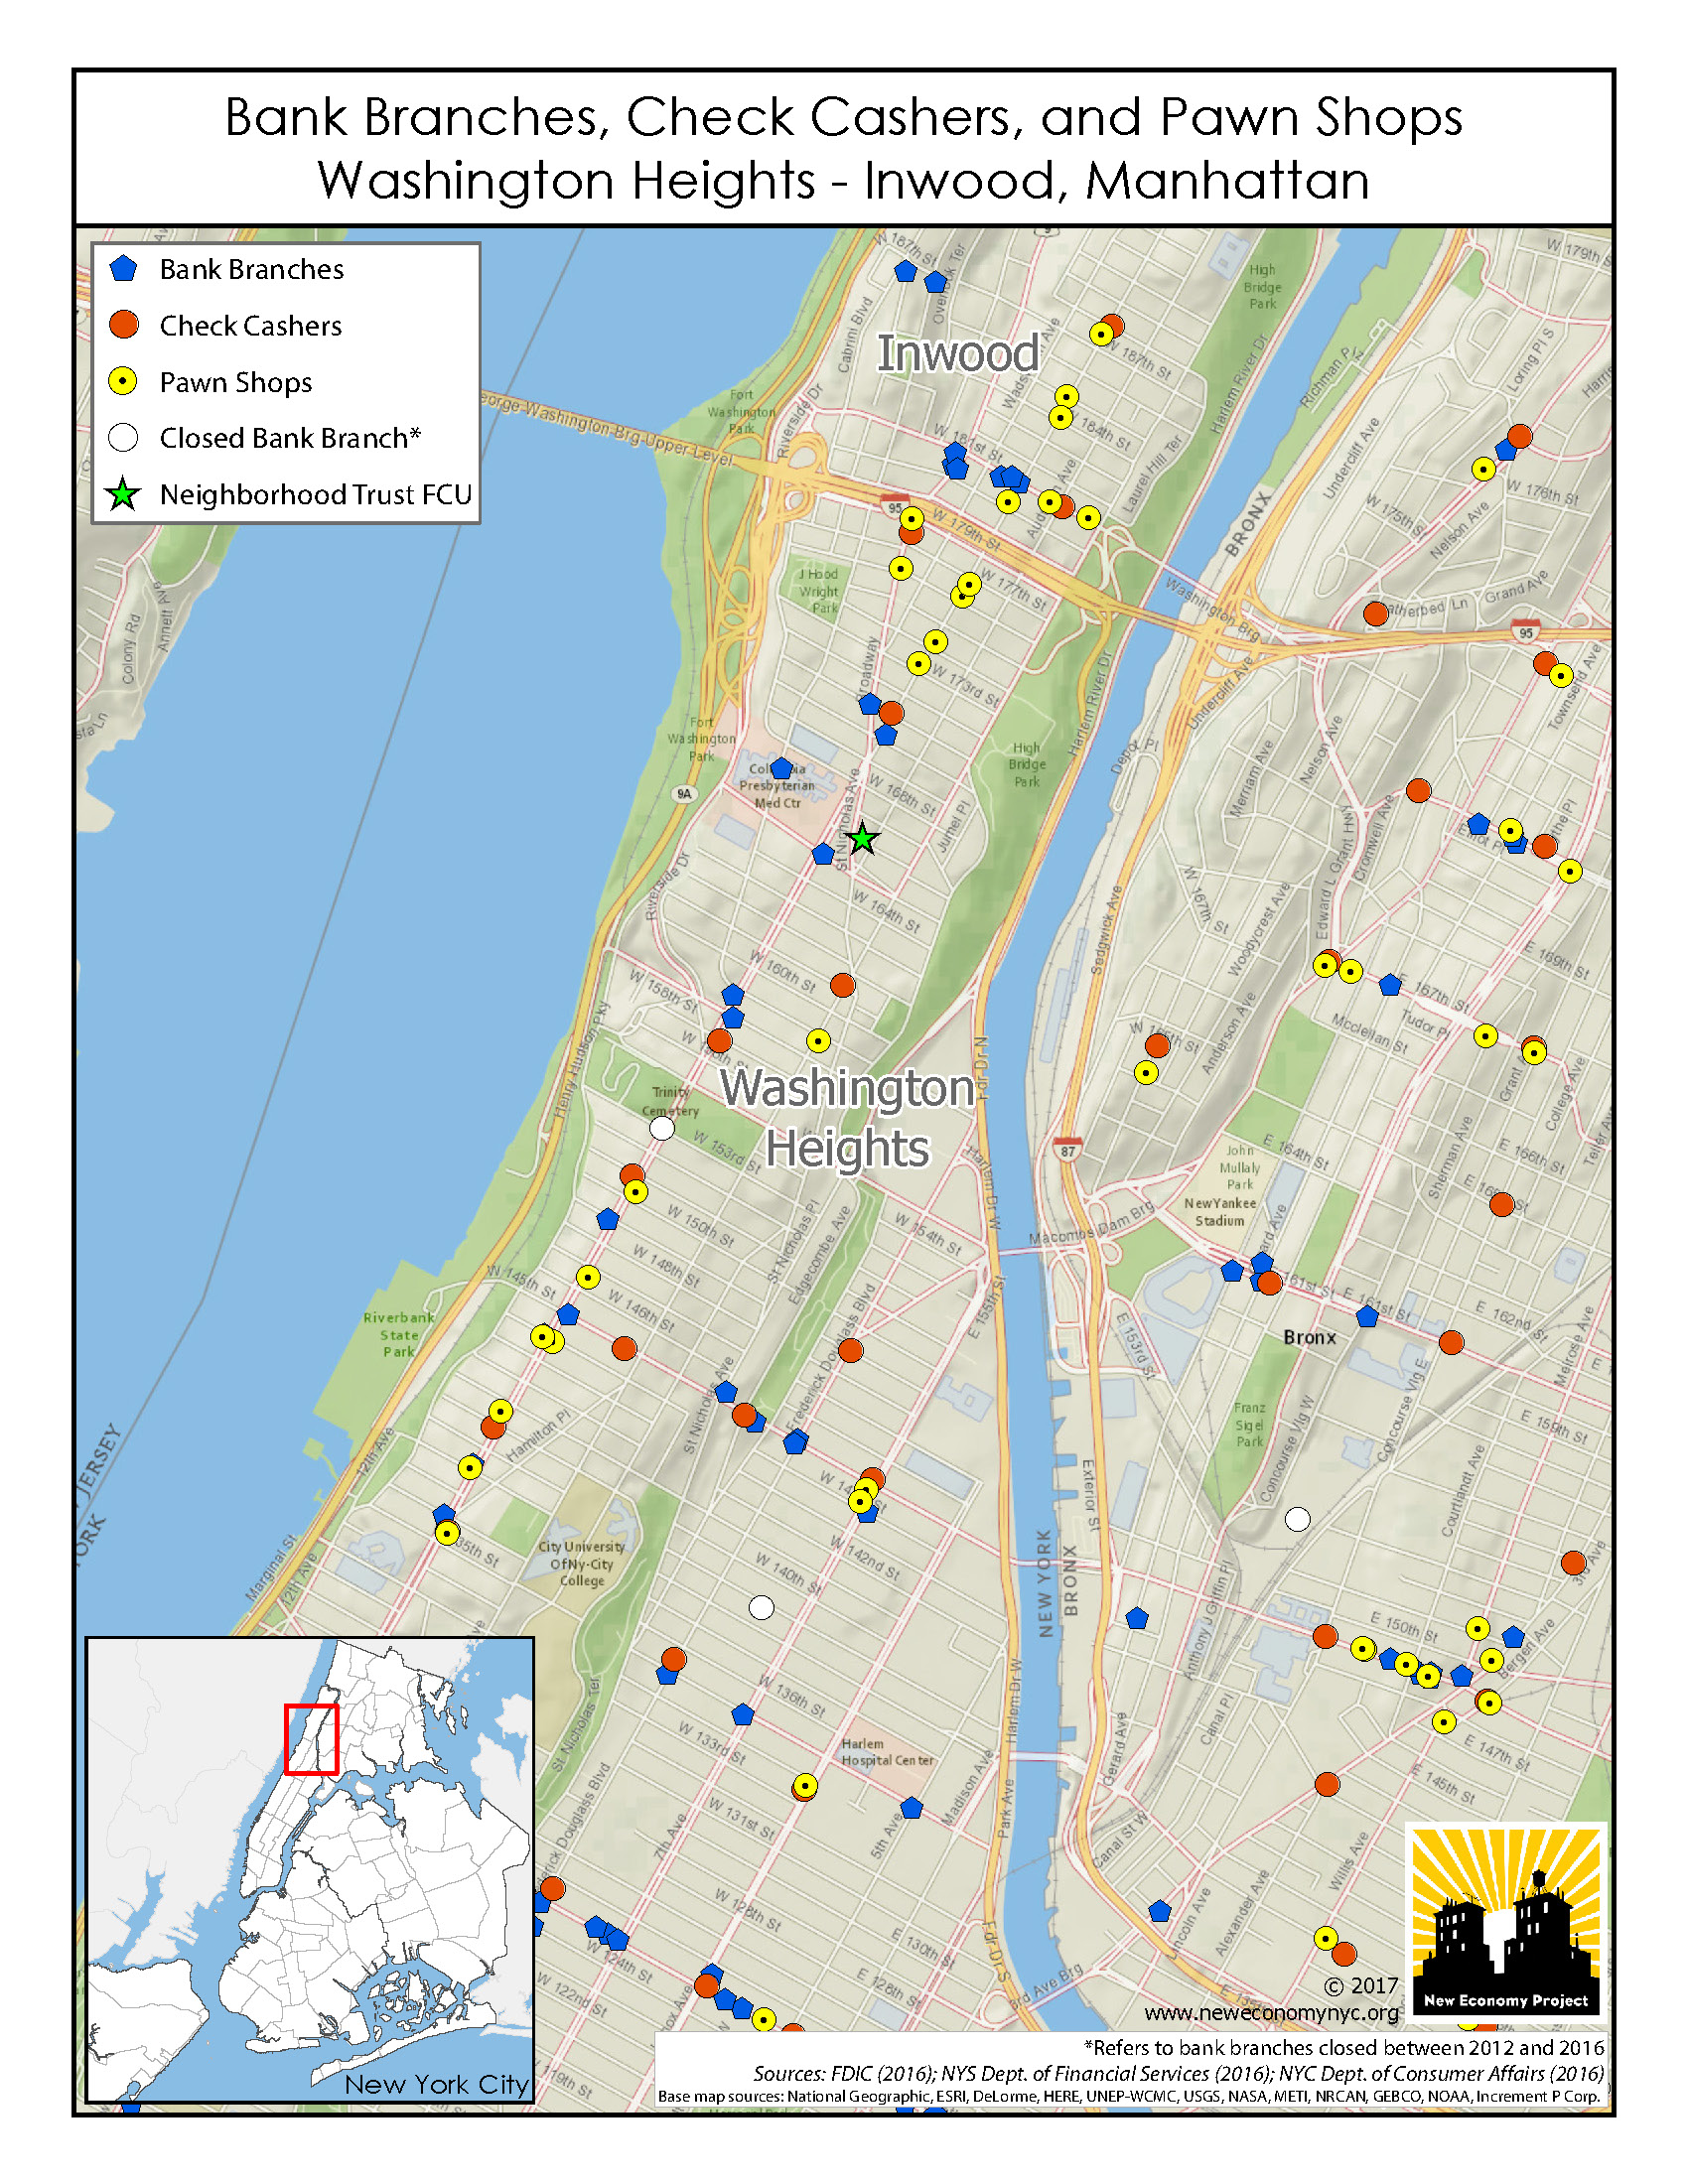 Maps: Financial Services in NYC Neighborhoods - New Economy ... on new jersey and staten island map, manhattan financial district skyline, lower east side new york map, new york city times square map, new york city 1860 map, new york city street grid map, westchester county new york zip code map, new york city boroughs map, new york times square hotel map, manhattan tv series, manhattan jewelry heist, san francisco tenderloin area map, manhattan midtown, manhattan bus routes, manhattan areas, manhattan tumblr, manhattan satellite, new york city walking map, manhattan spring, central park map,